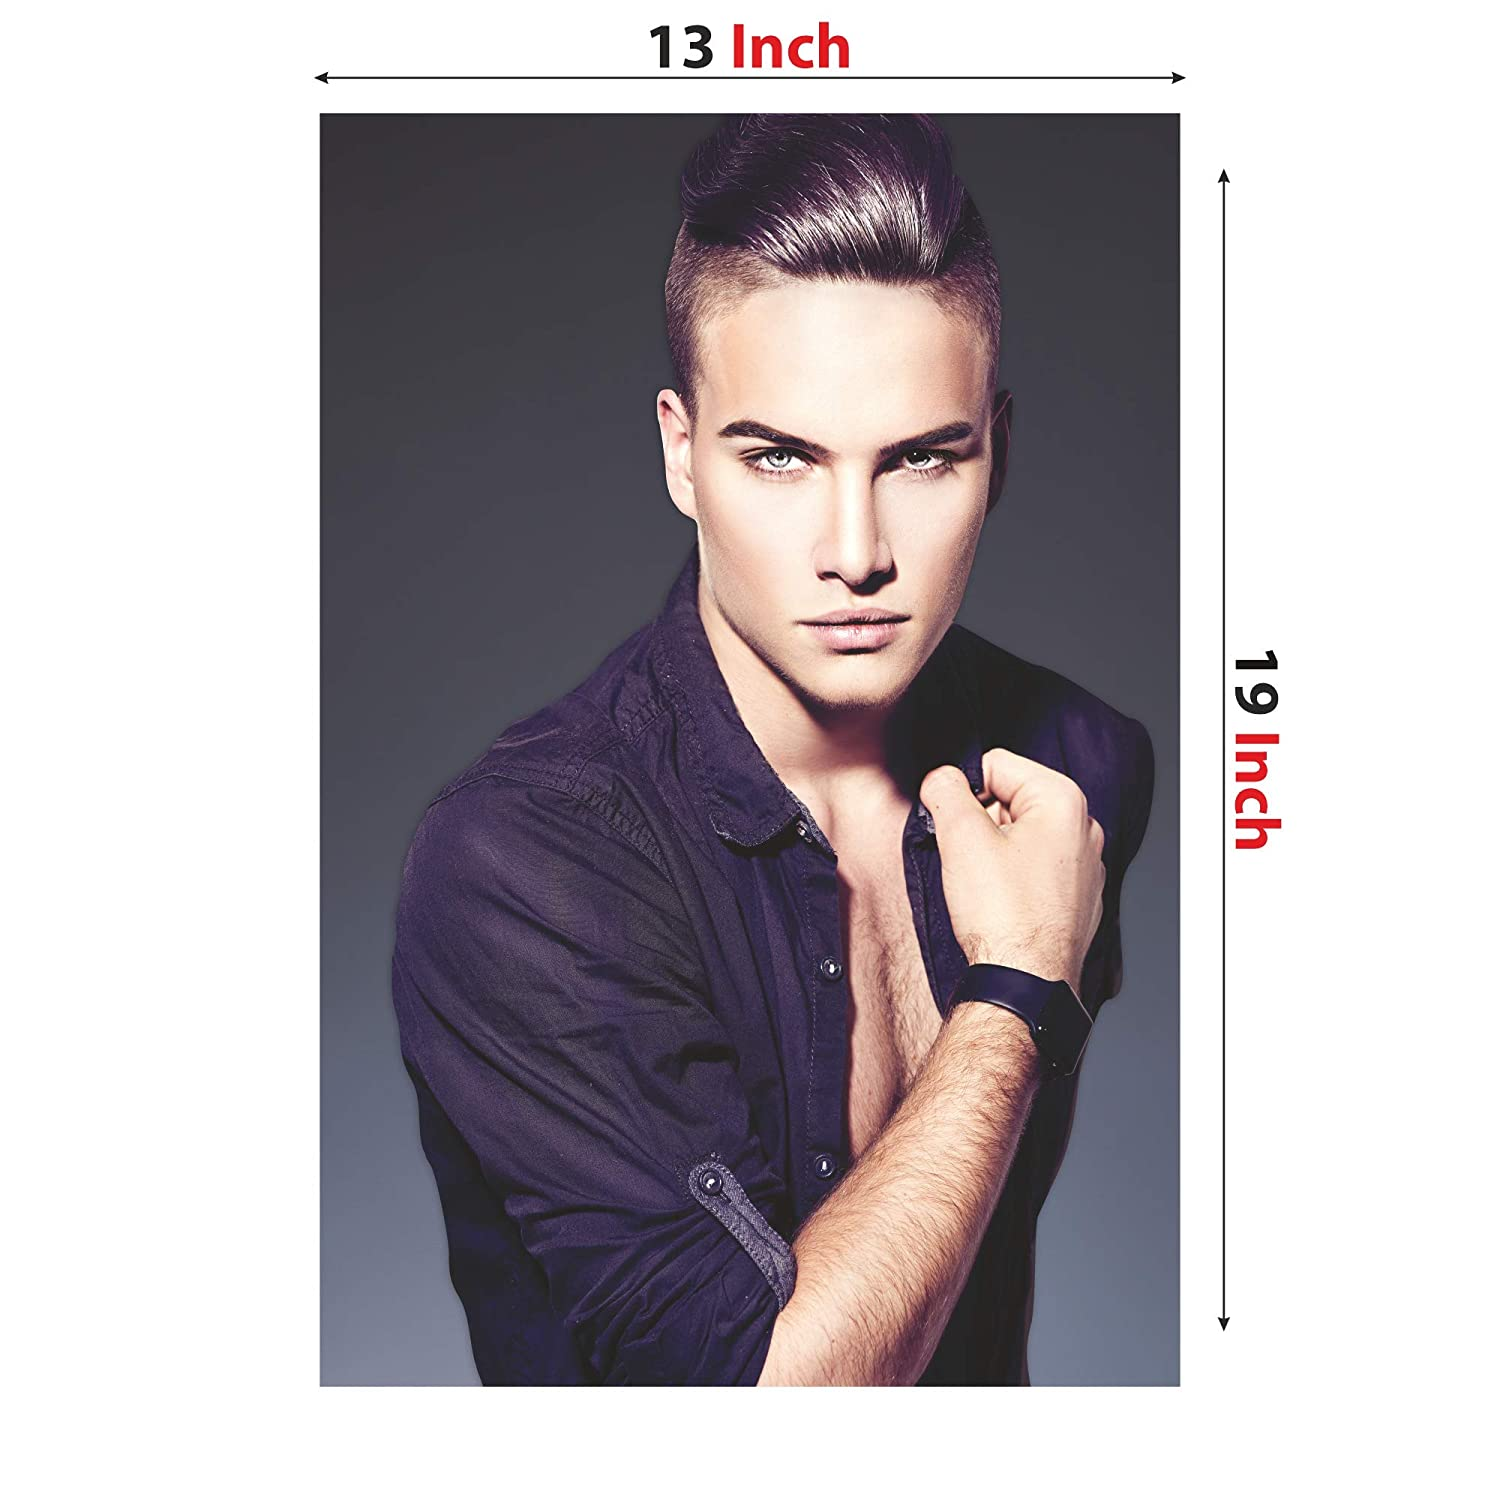 Anne Print Solutions High Fashion Model Man Stylish Haircut Hair Style Without Frame For Spa Wall Decor Beauty Salon Poster Pack 1 Pcs Size 13 Inch X 19 Inch Multicolour Amazon In Office Products